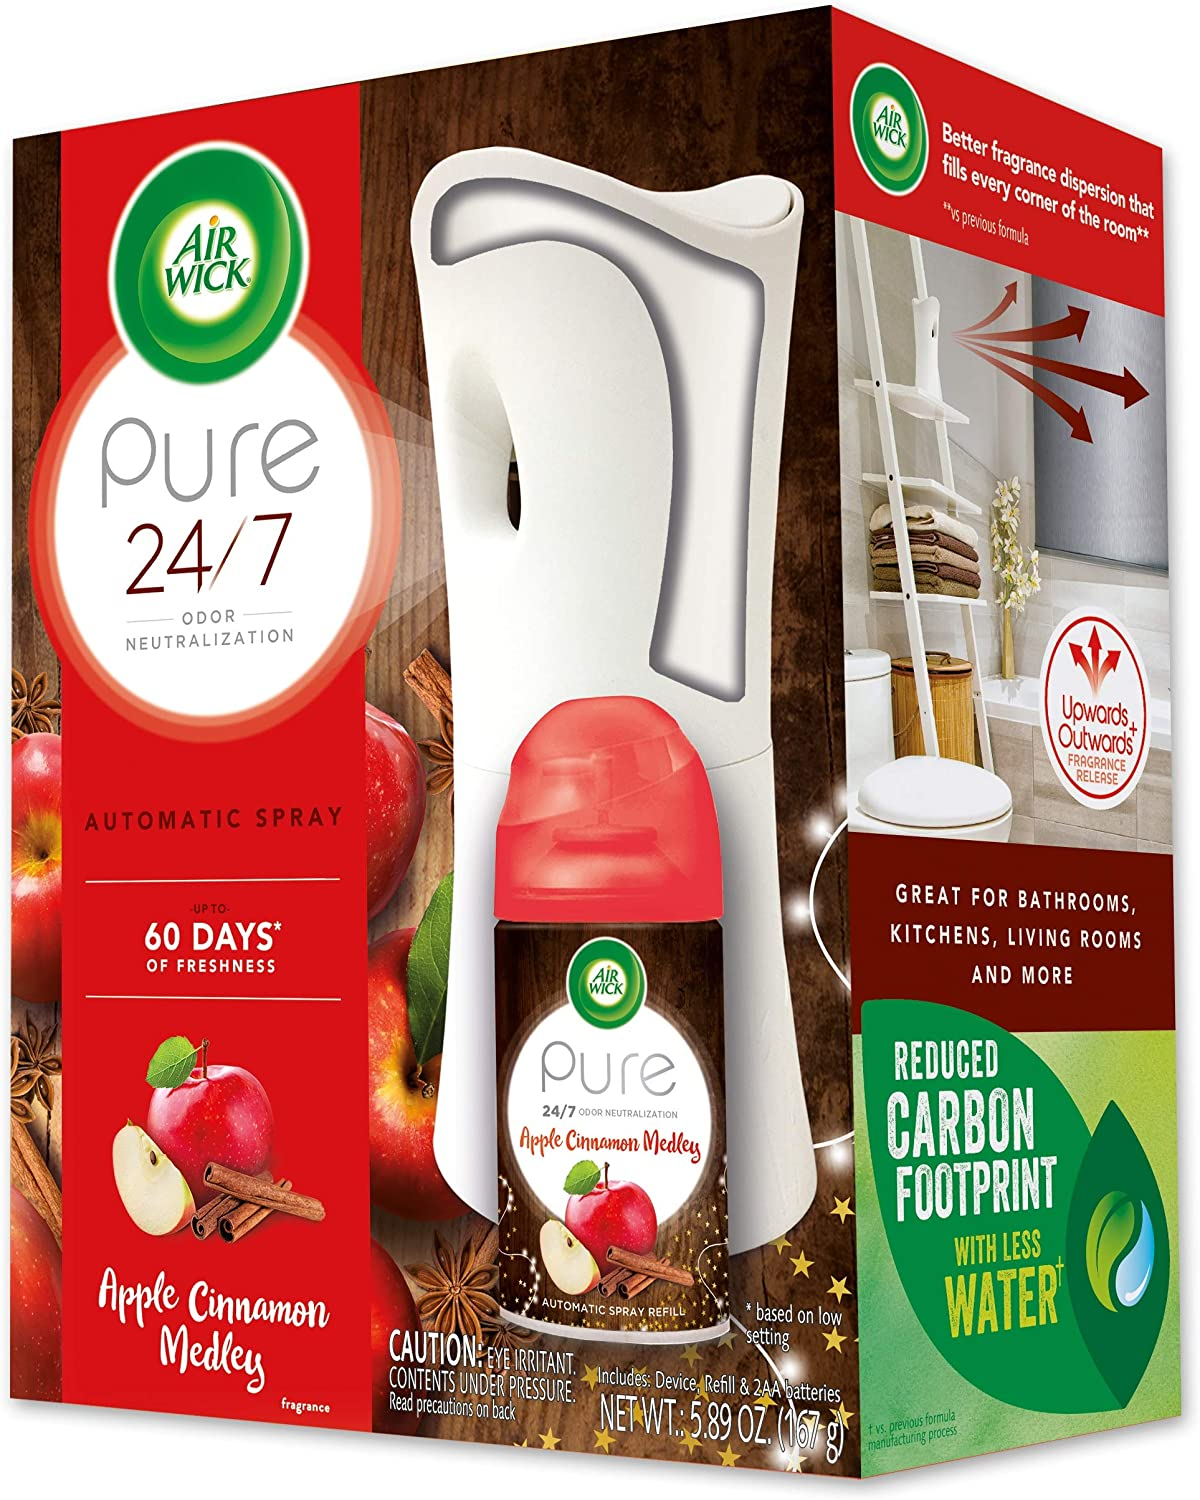 Air Wick Freshmatic Automatic Spray Starter Kit, (Gadget + Refill), Apple Cinnamon Medley, Holiday scent, Holiday spray, Essential Oils, Air Freshener, Odor Neutralization, Packaging May